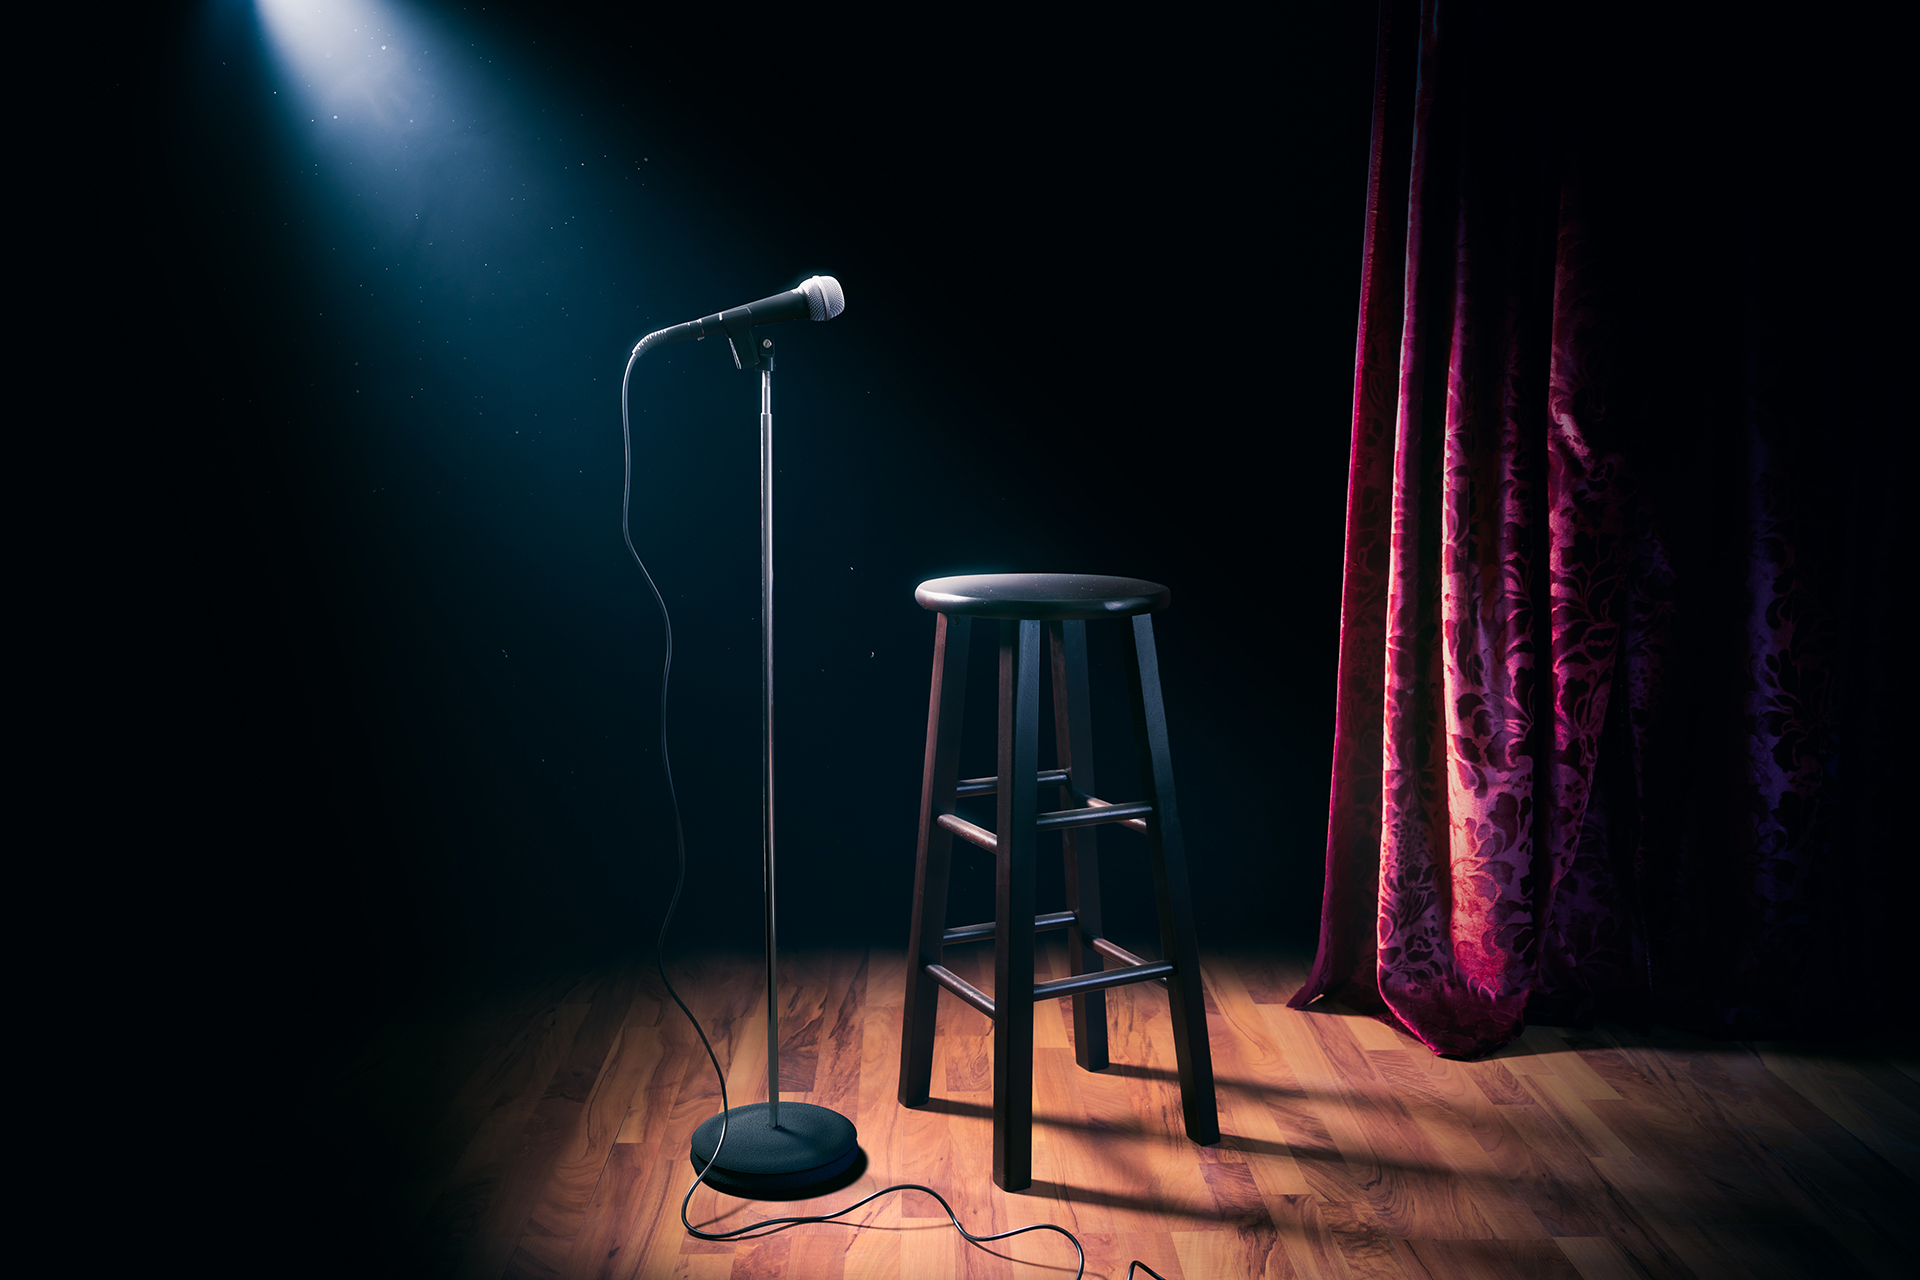 Stand-up comedy workshop